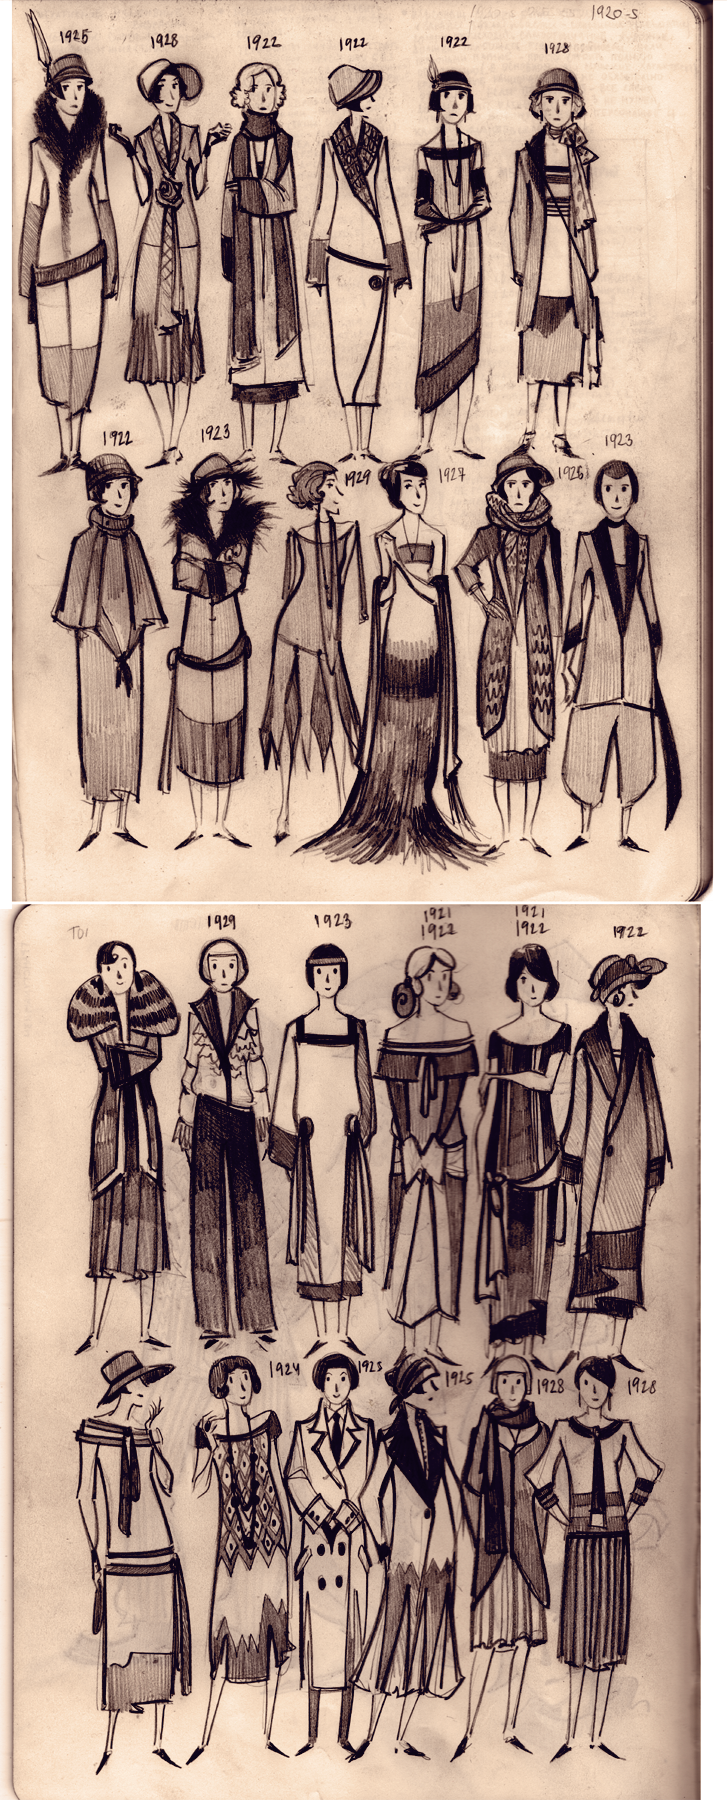 Caravantea S Deviantart Favourites 1920s Fashion Women 1920s Fashion Art Deco Fashion